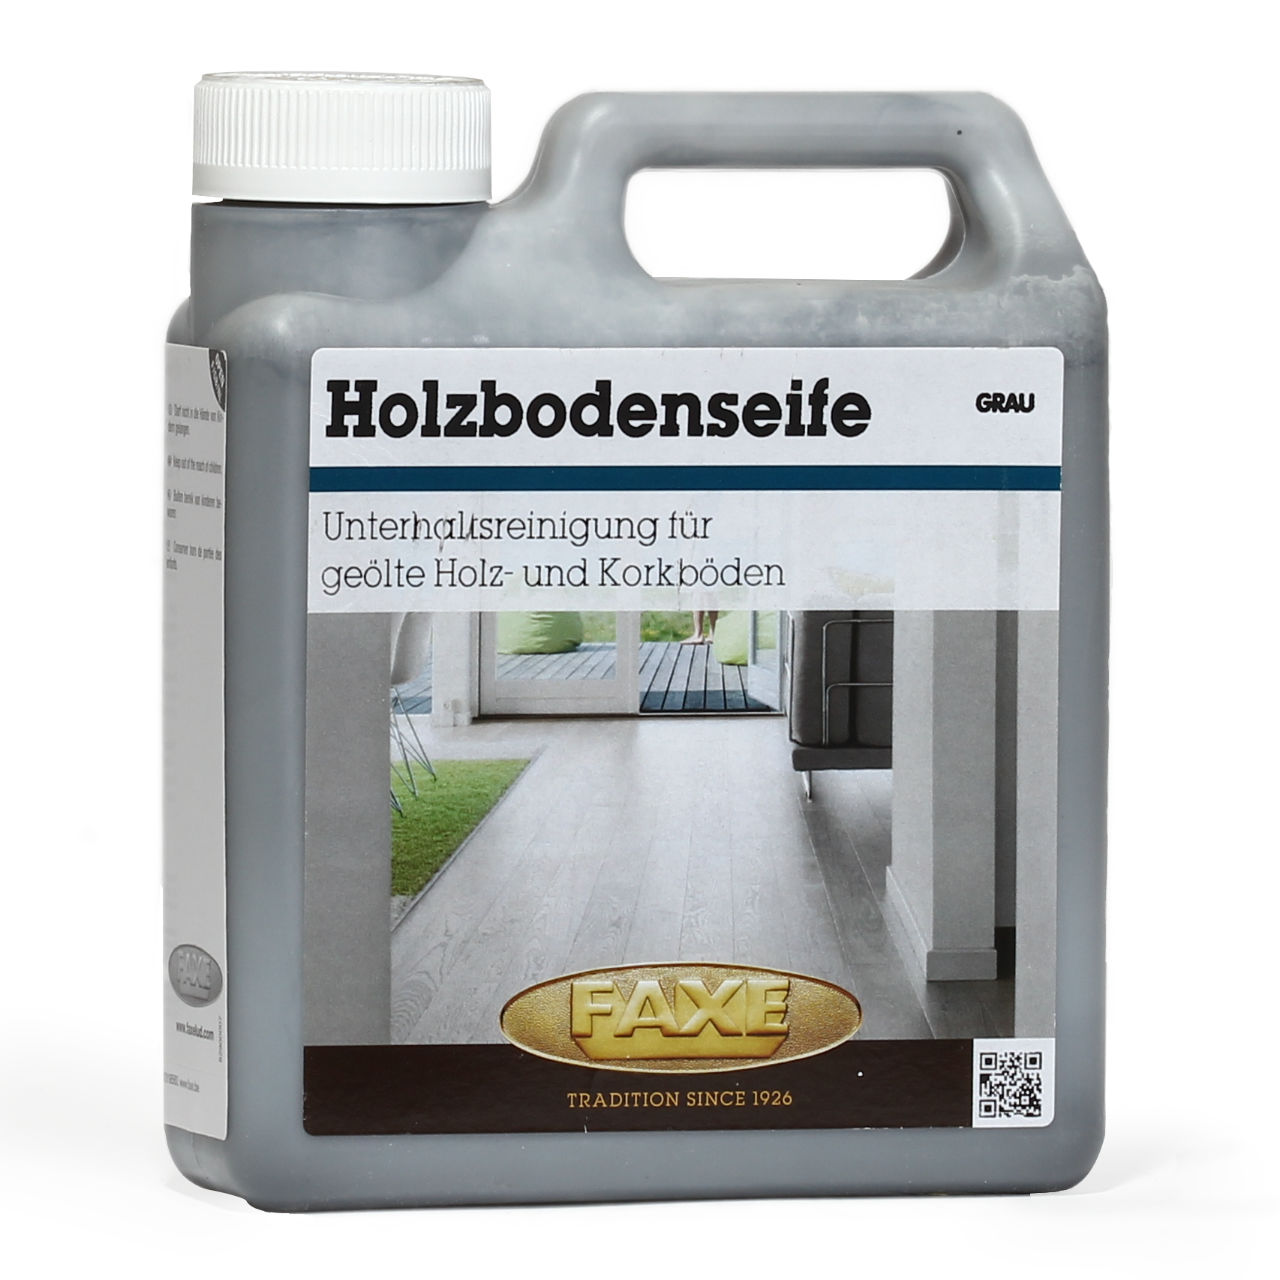 Grauer Holzboden Holzbodenseife Grau